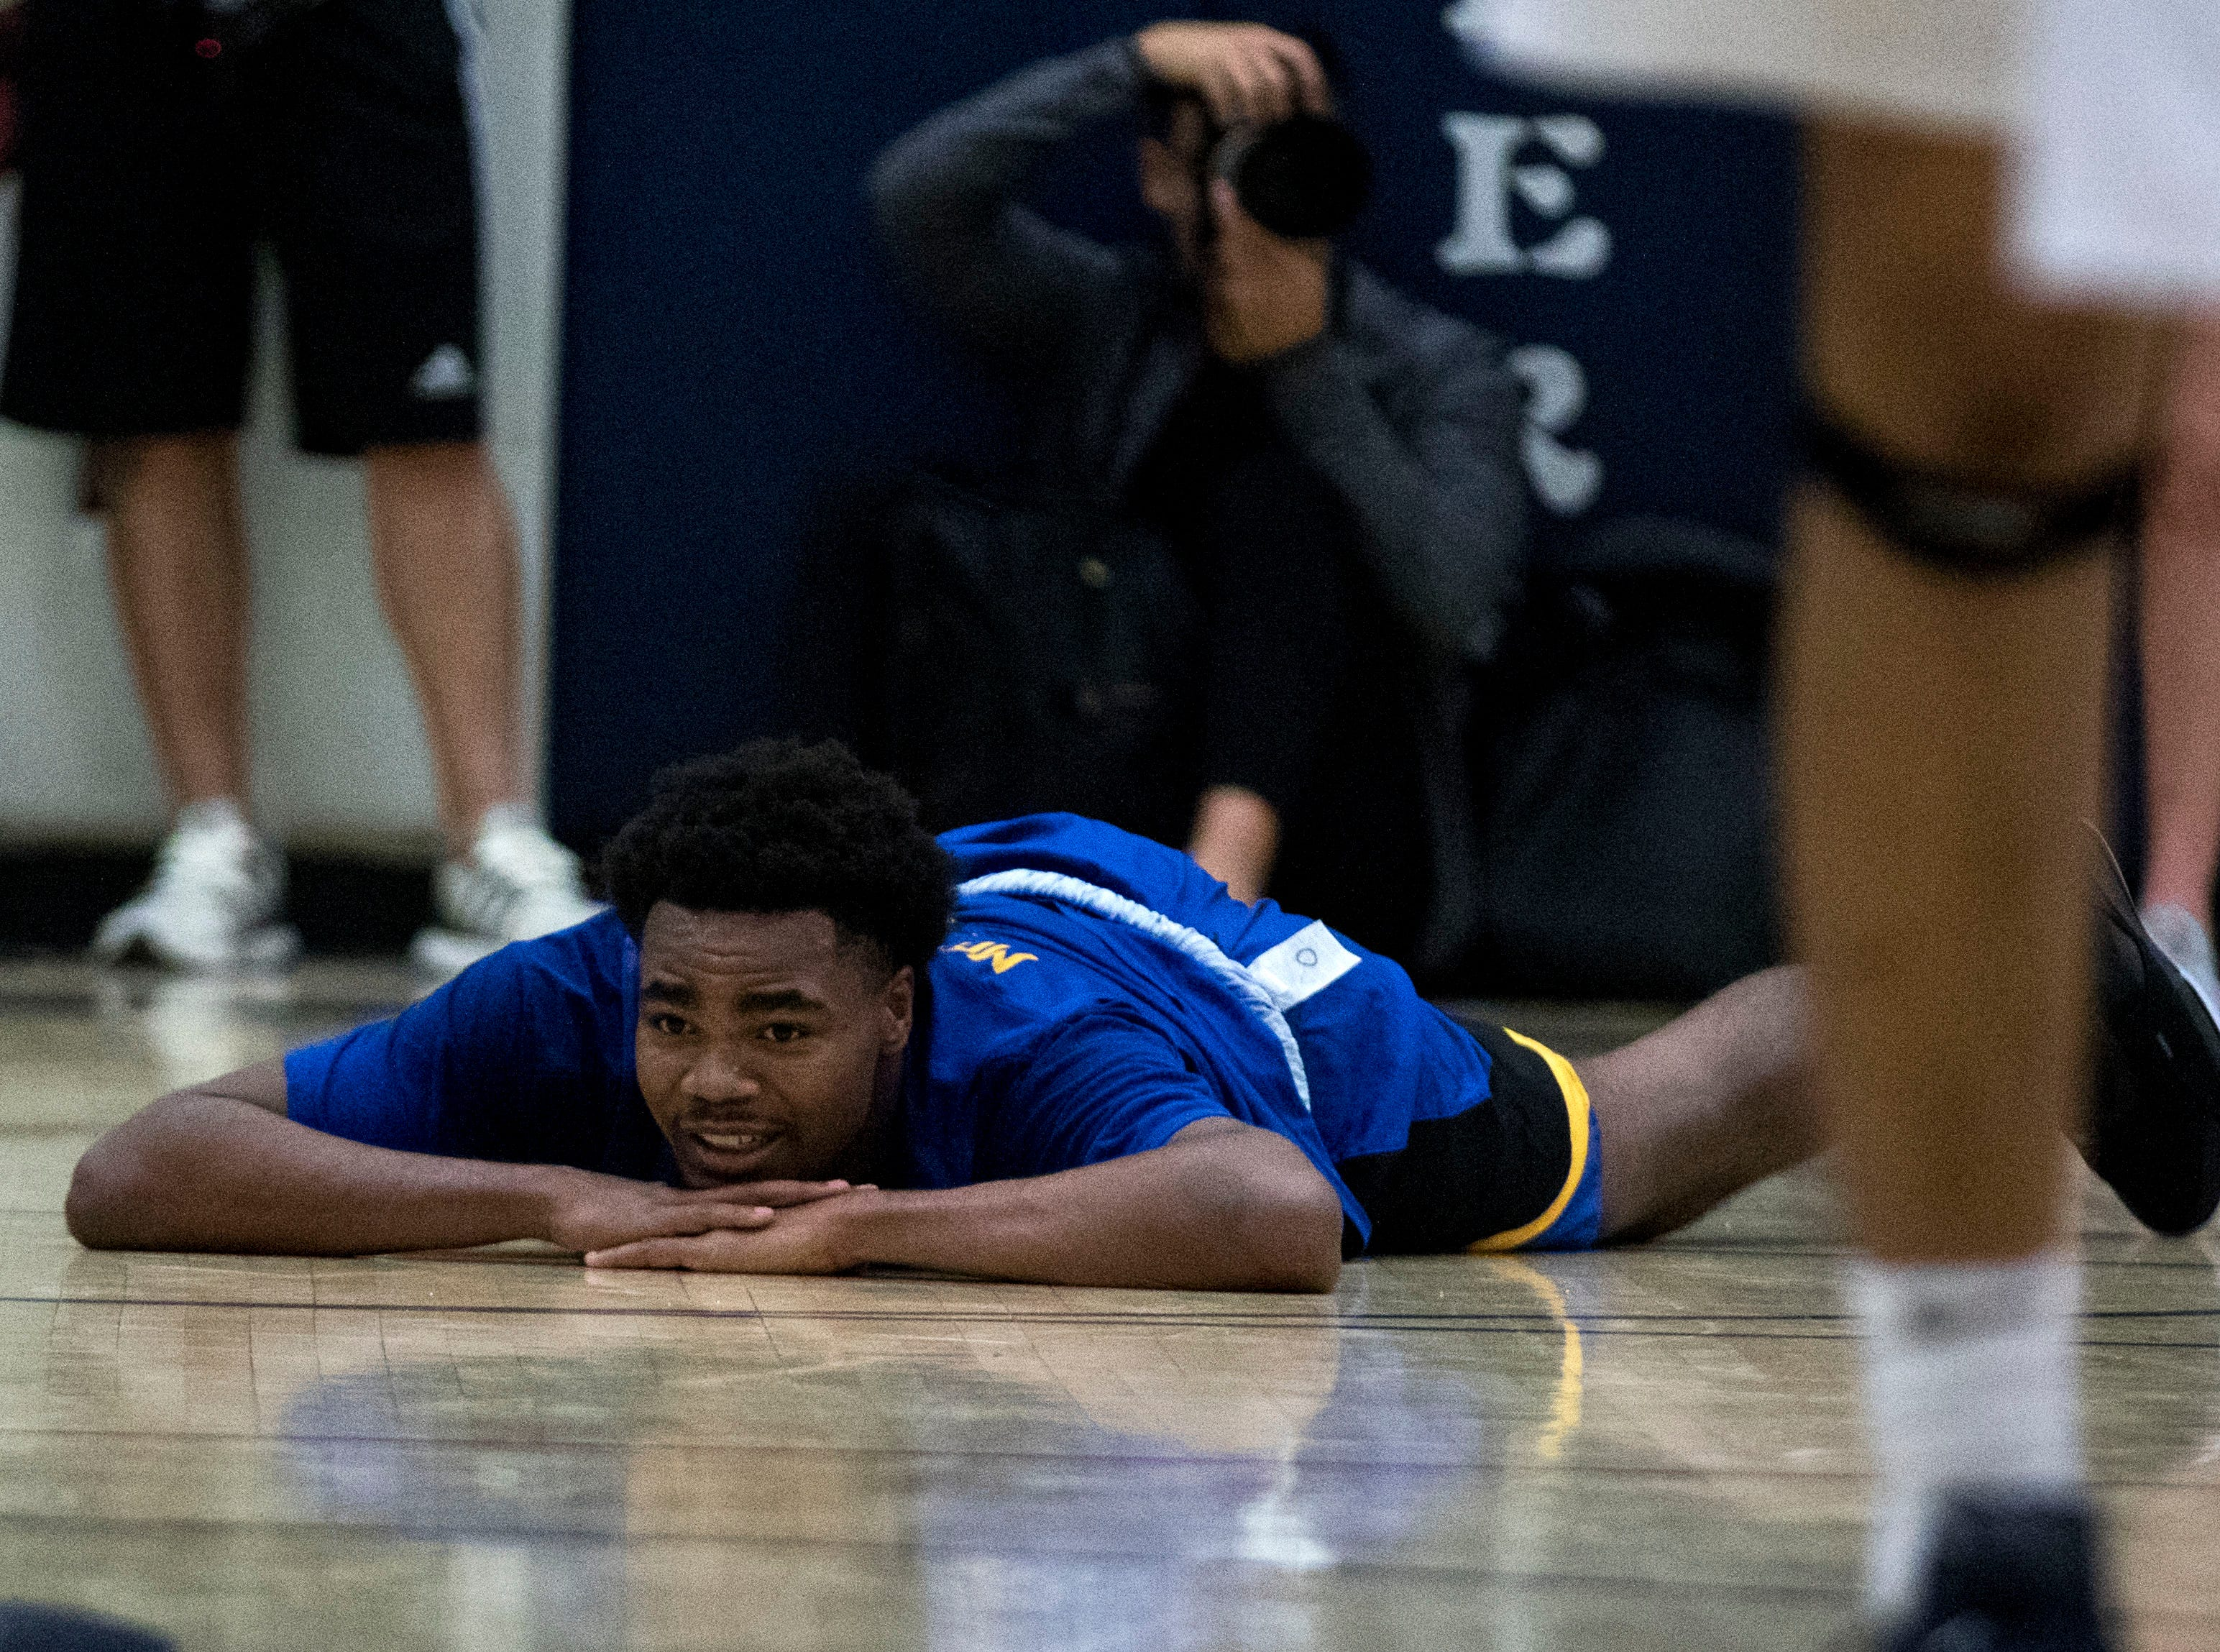 Shadow Mountain's Jalen Williams lays on the floor in disbelief after getting called for a foul during the second half of their game with Pinnacle in Phoenix, Friday, Nov. 30, 2018.